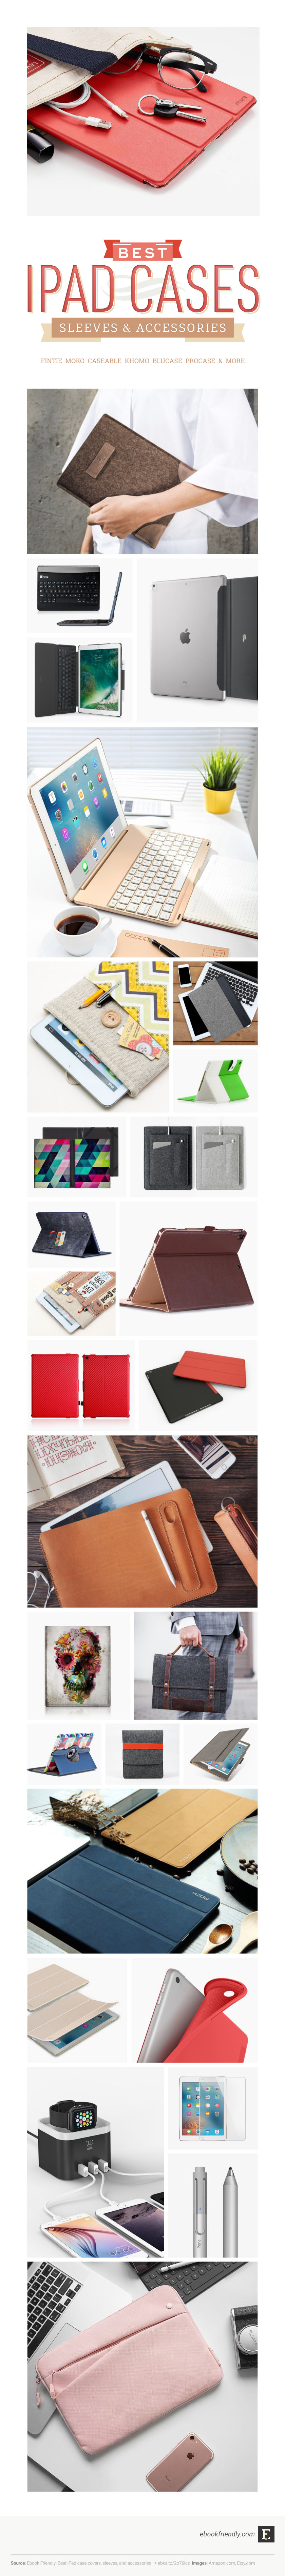 Best iPad cases and accessories to buy in 2018 (infographic0 - iPad 9.7, iPad Pro, and older models